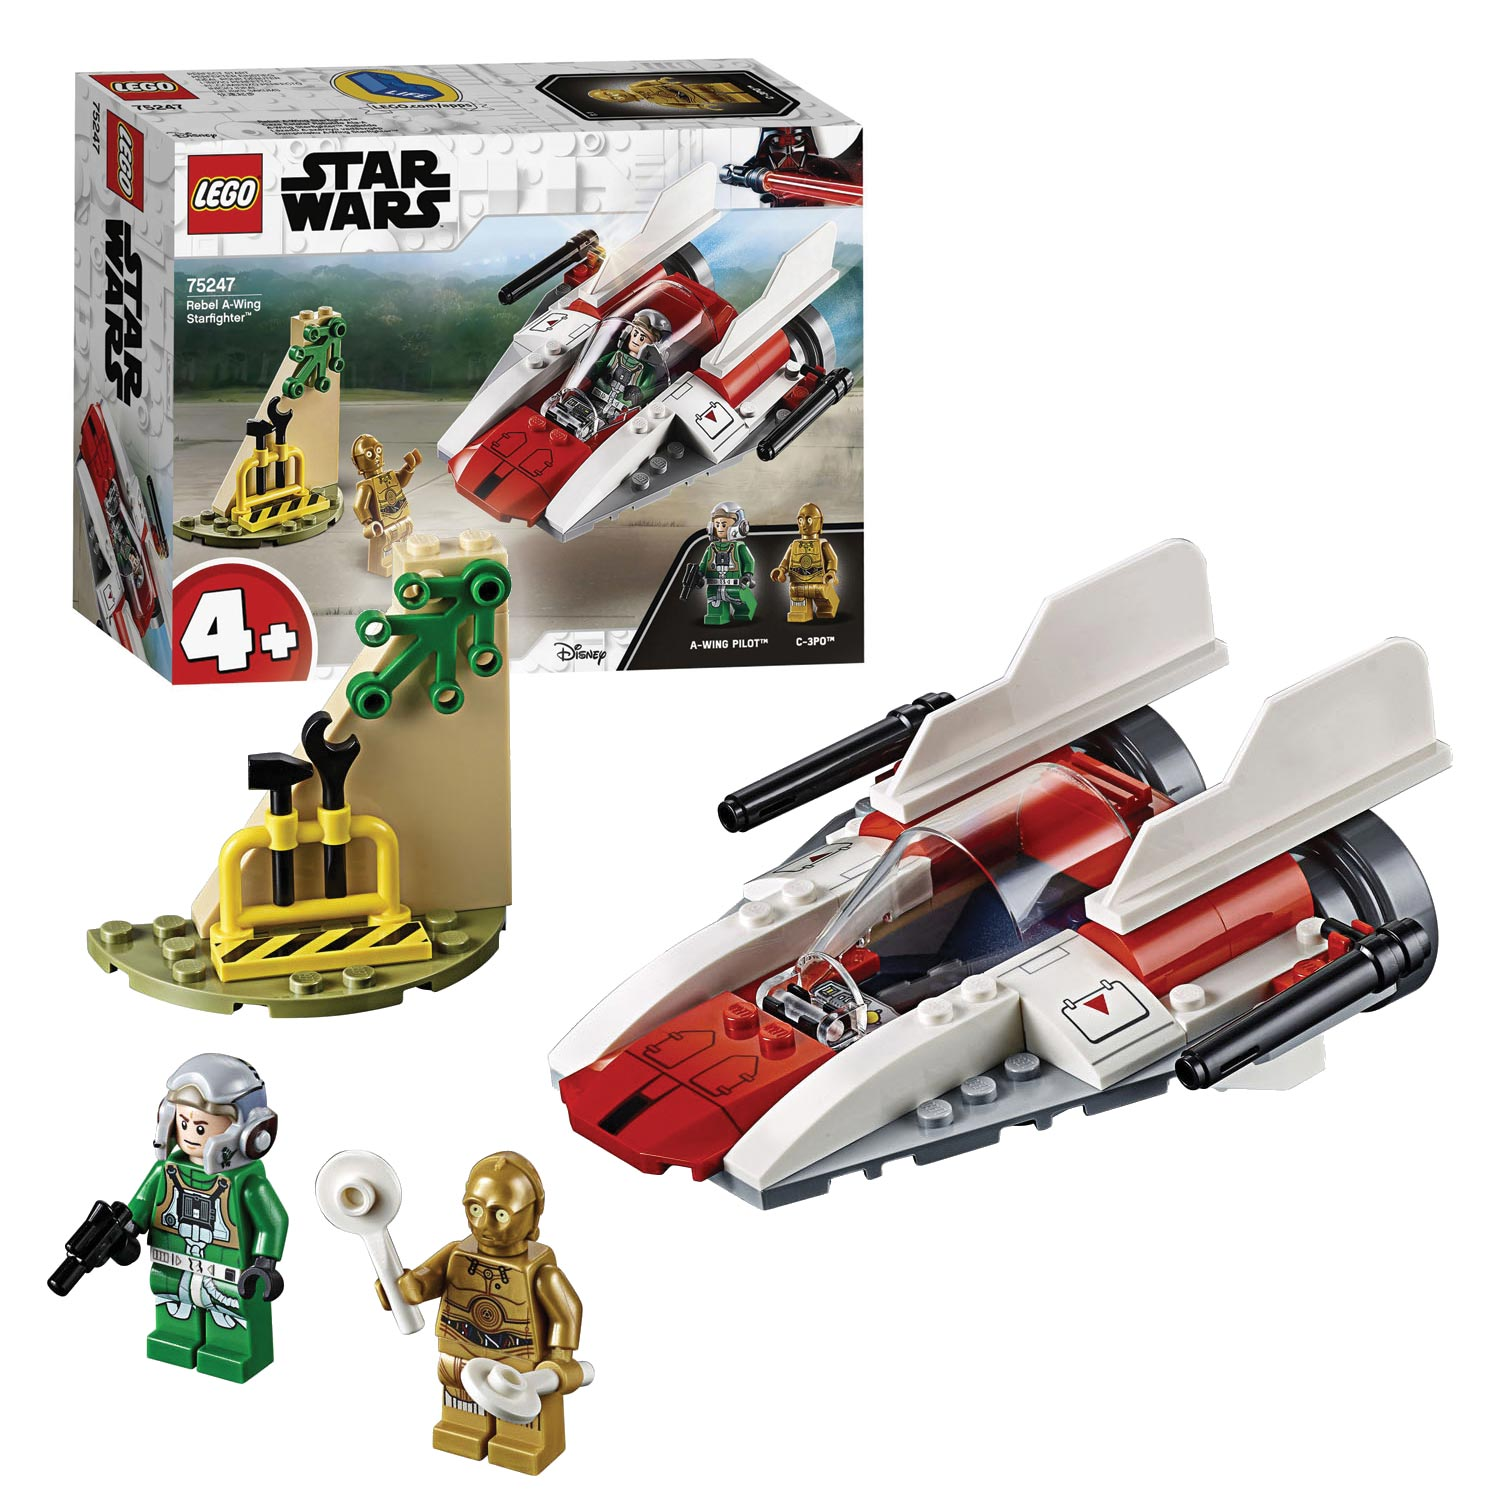 LEGO Star Wars A-Wing Starfighter - 75247